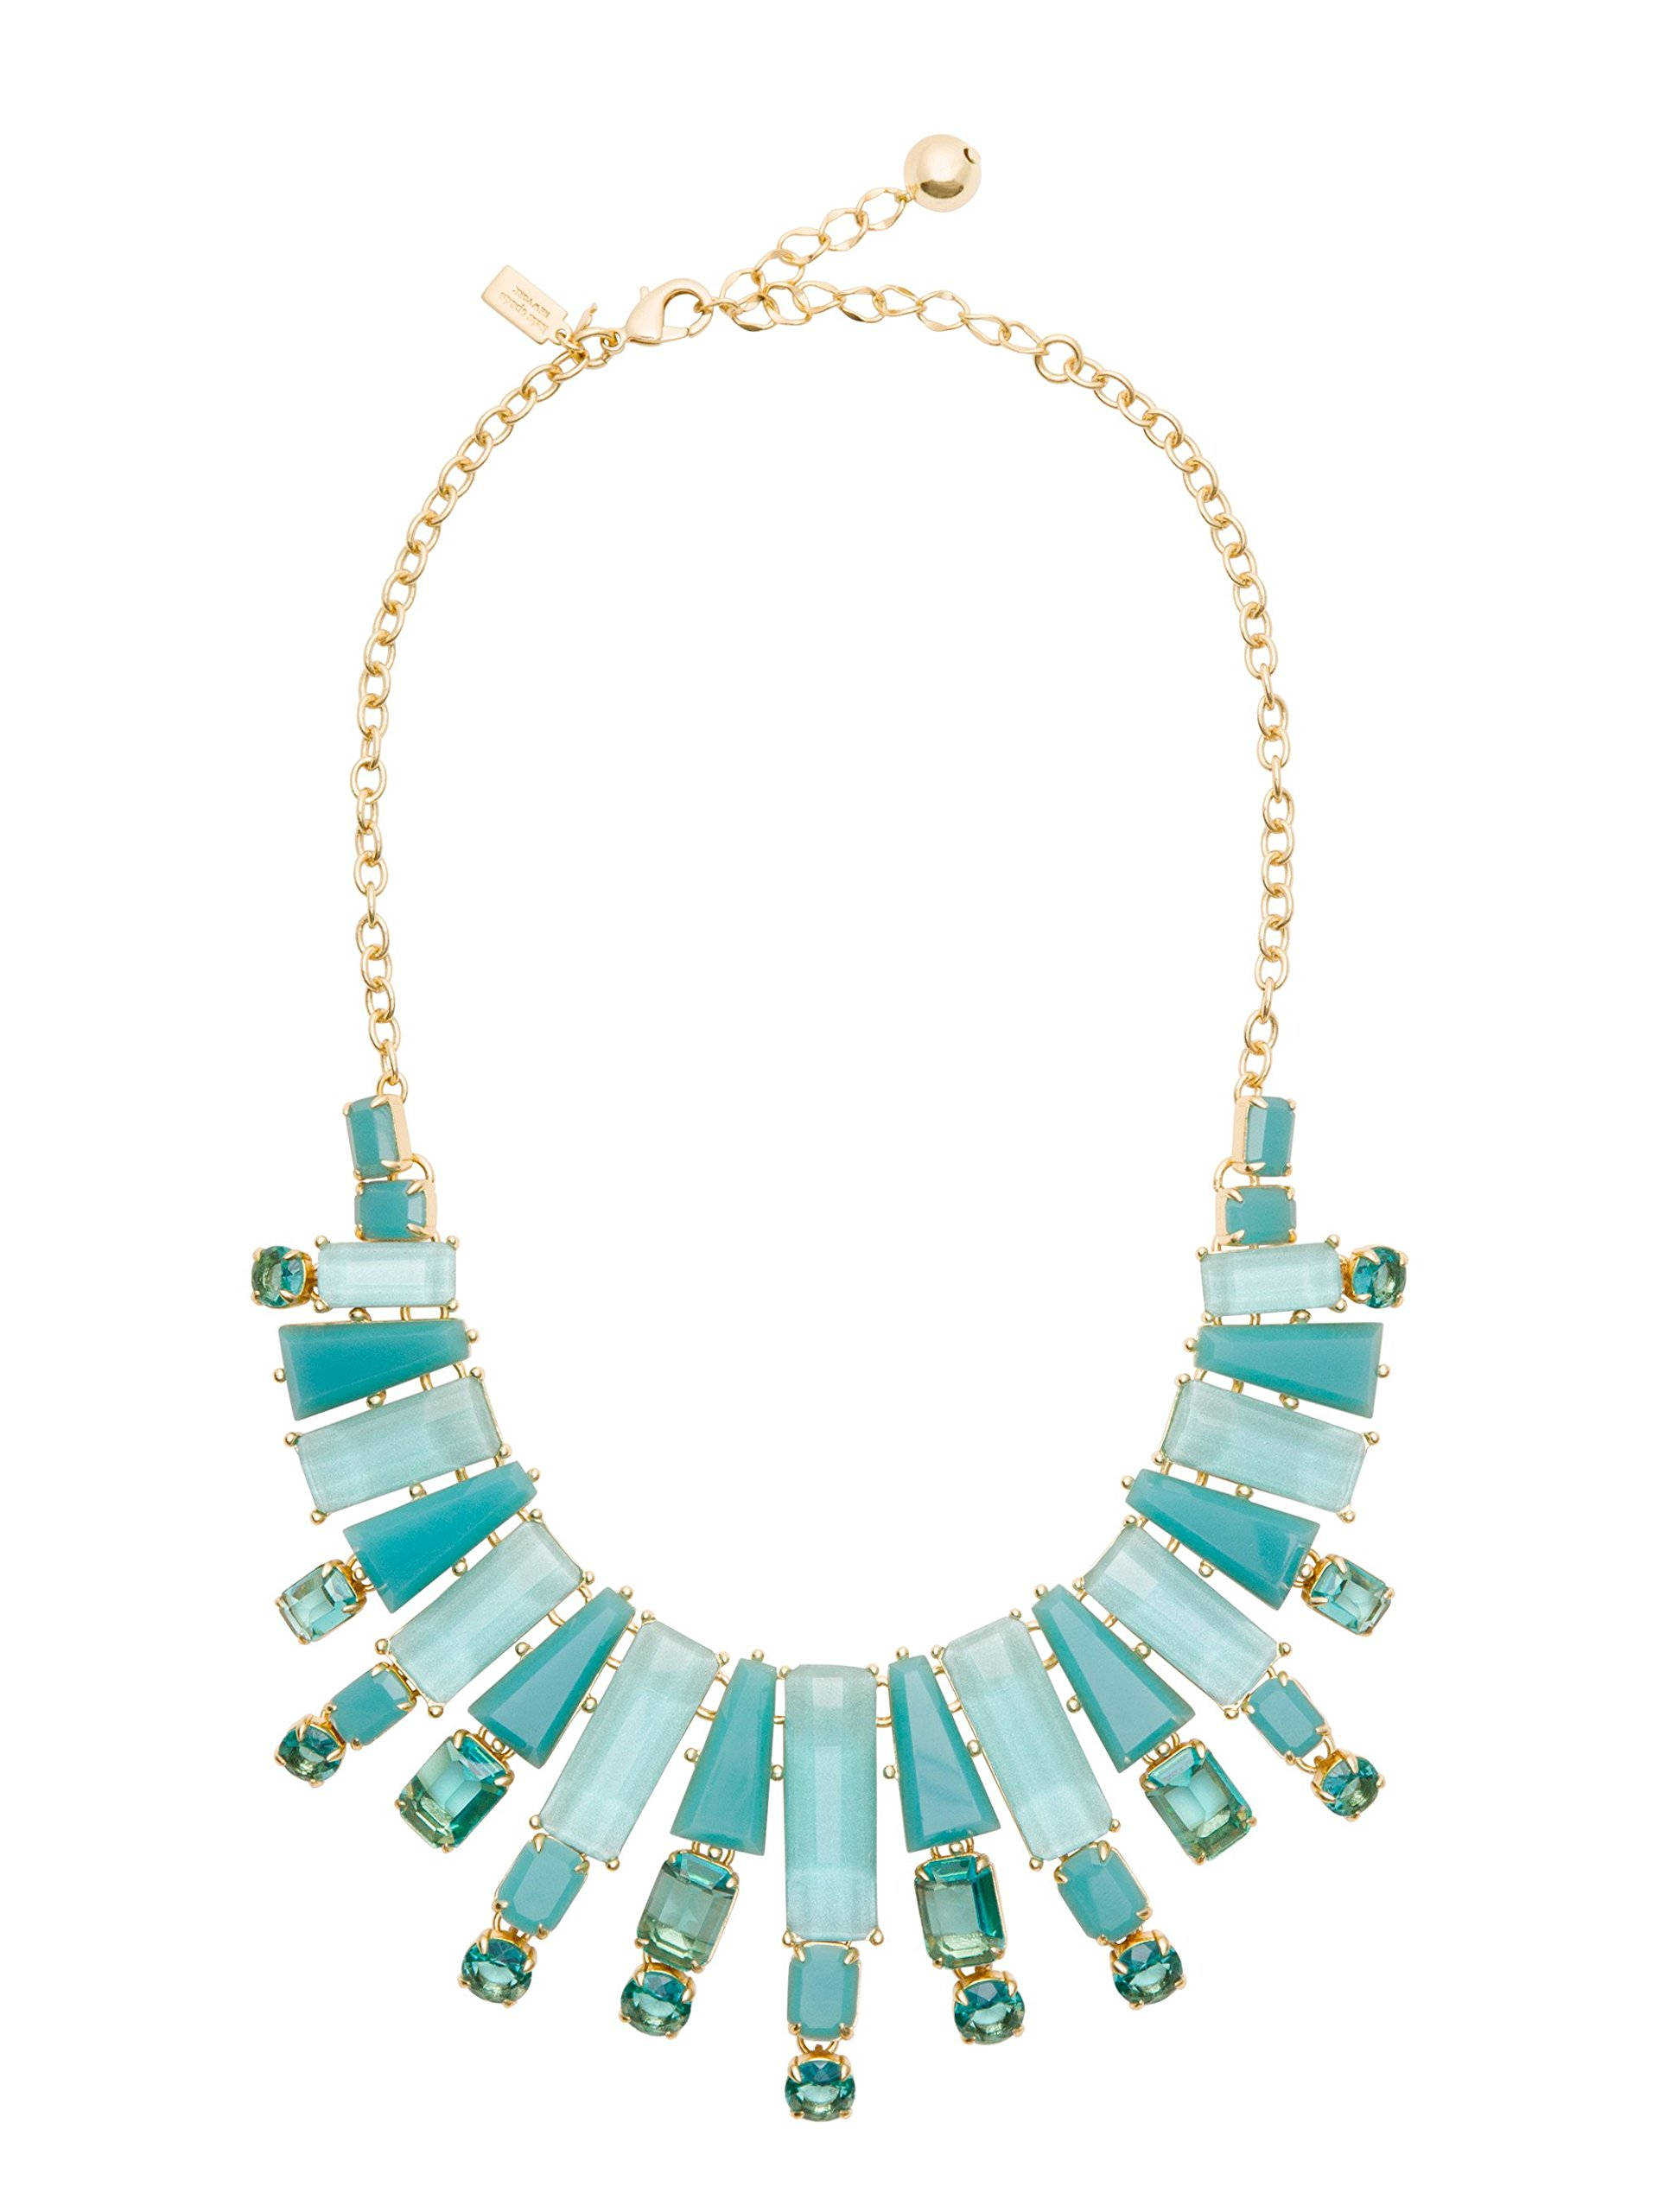 Kate Spade 'Beach Gem' Statement Necklace, Aqua Multi